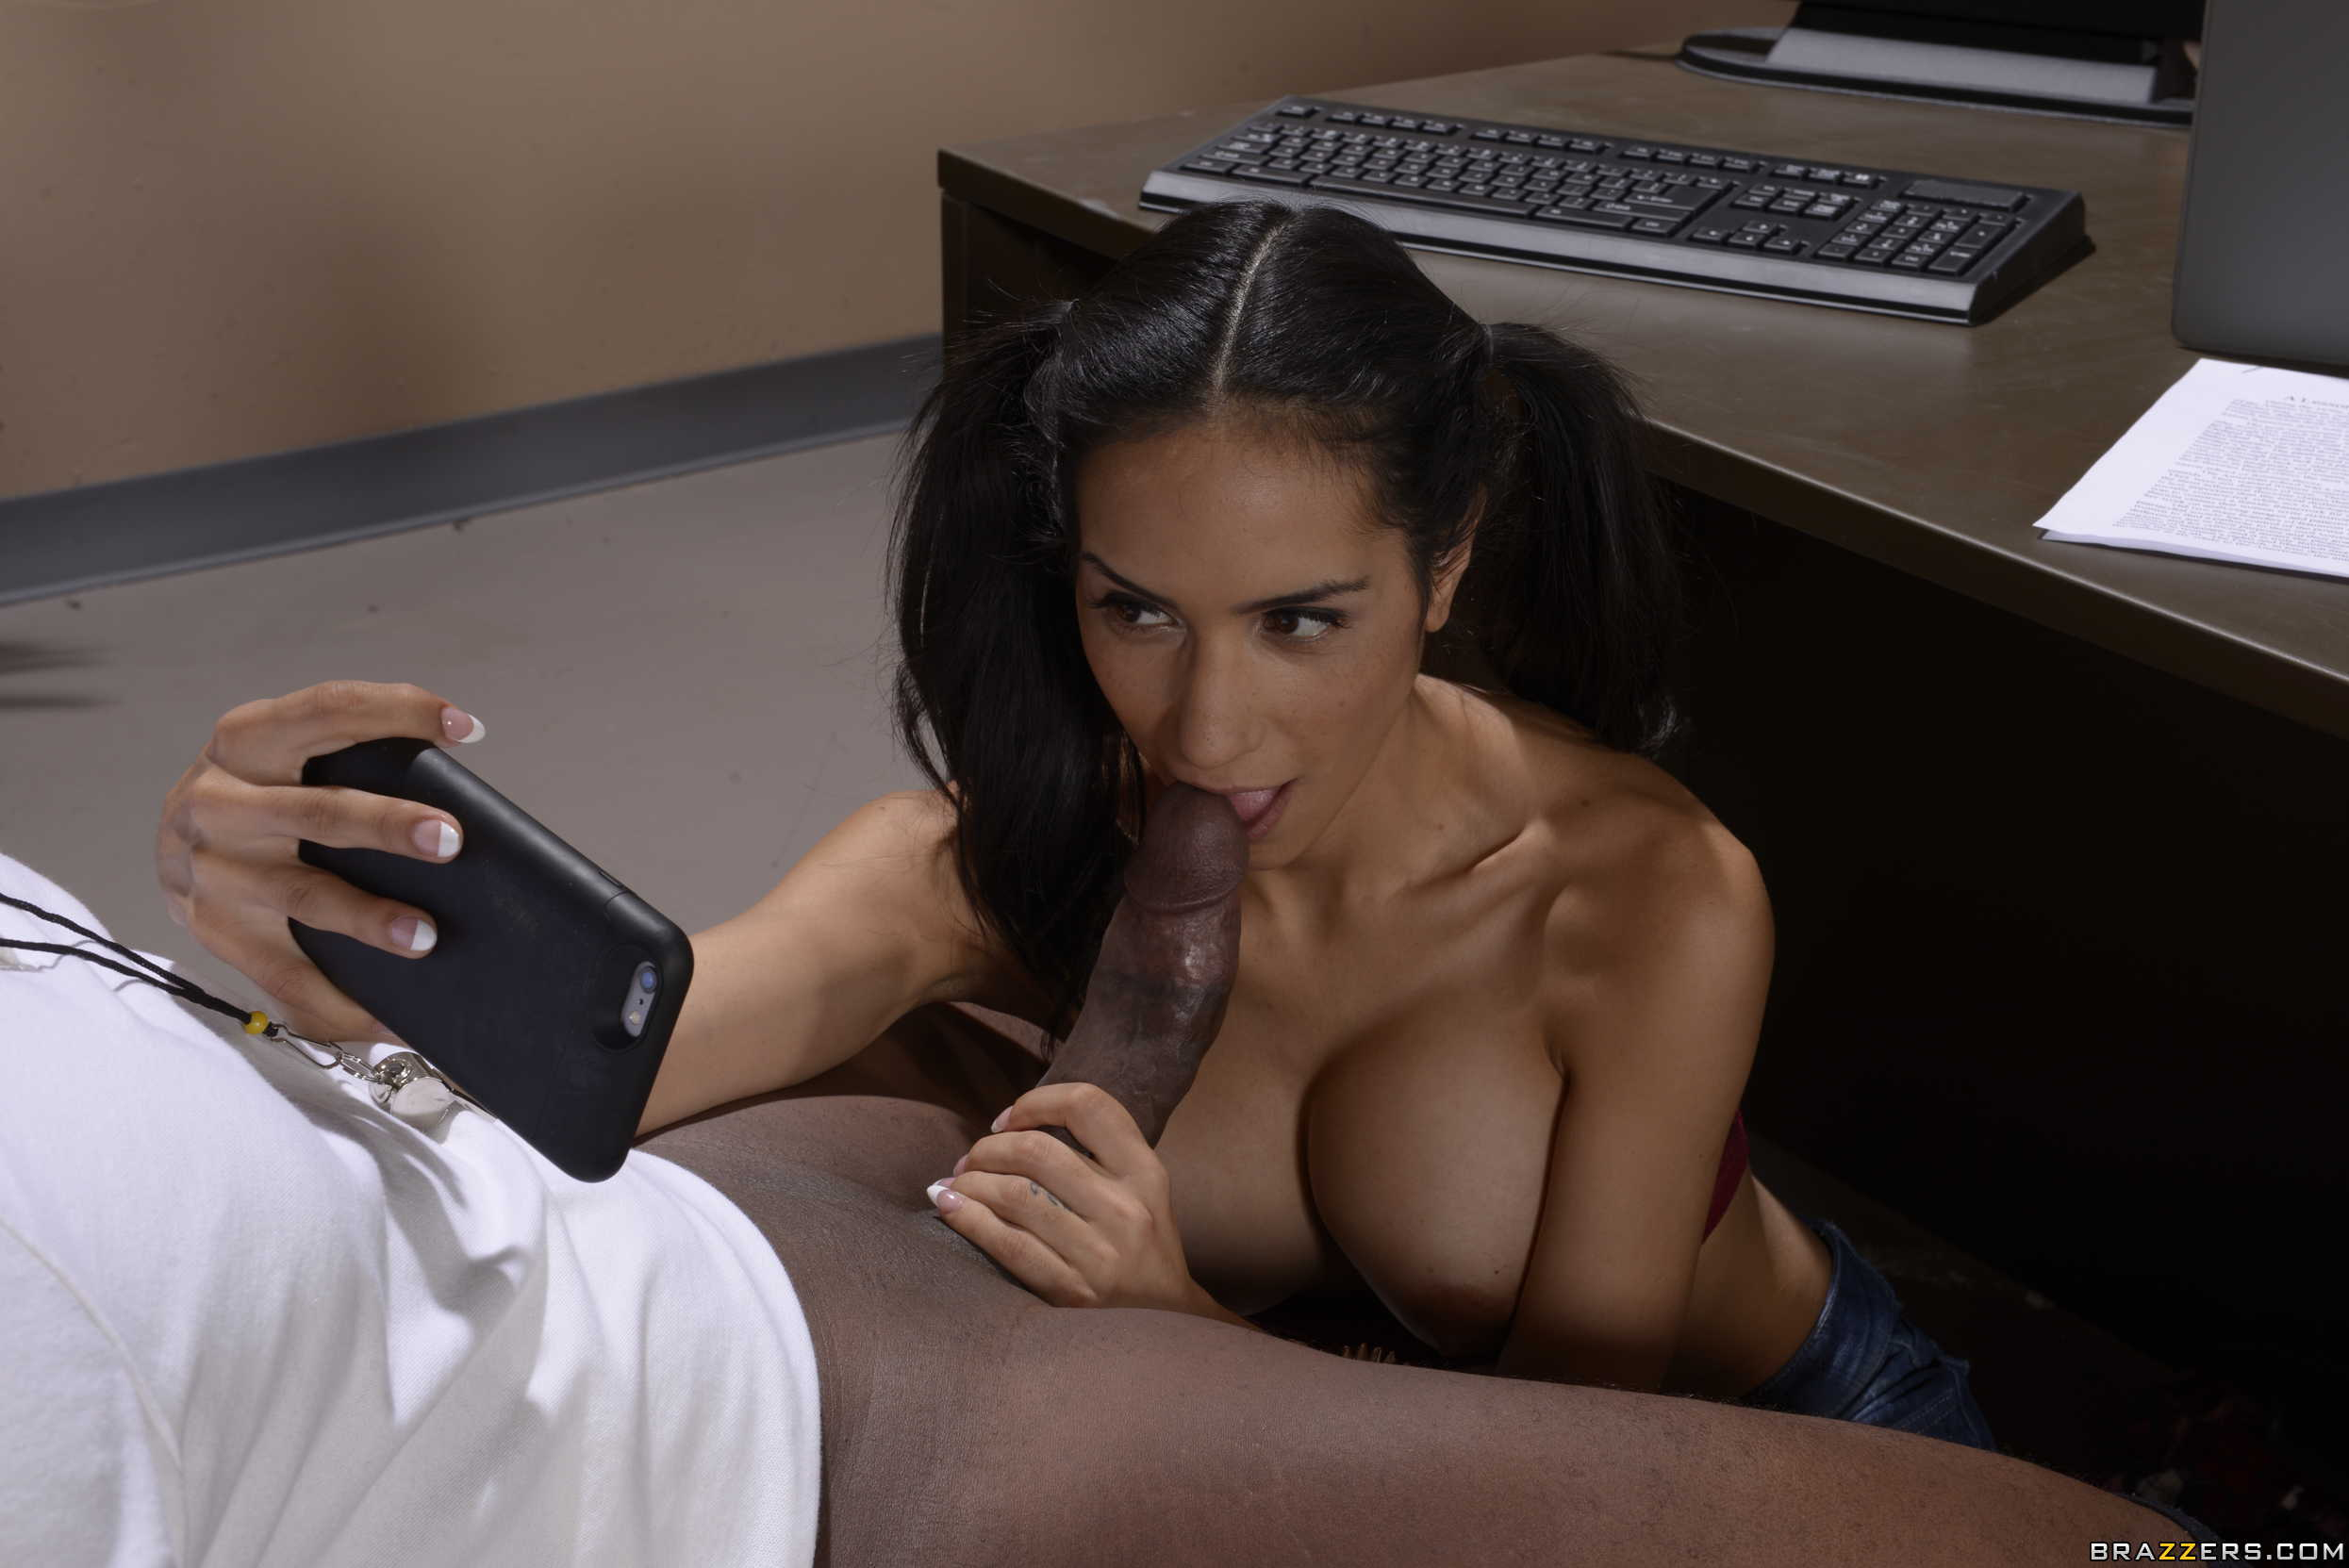 Best deepthroat action ever seen - 3 part 4